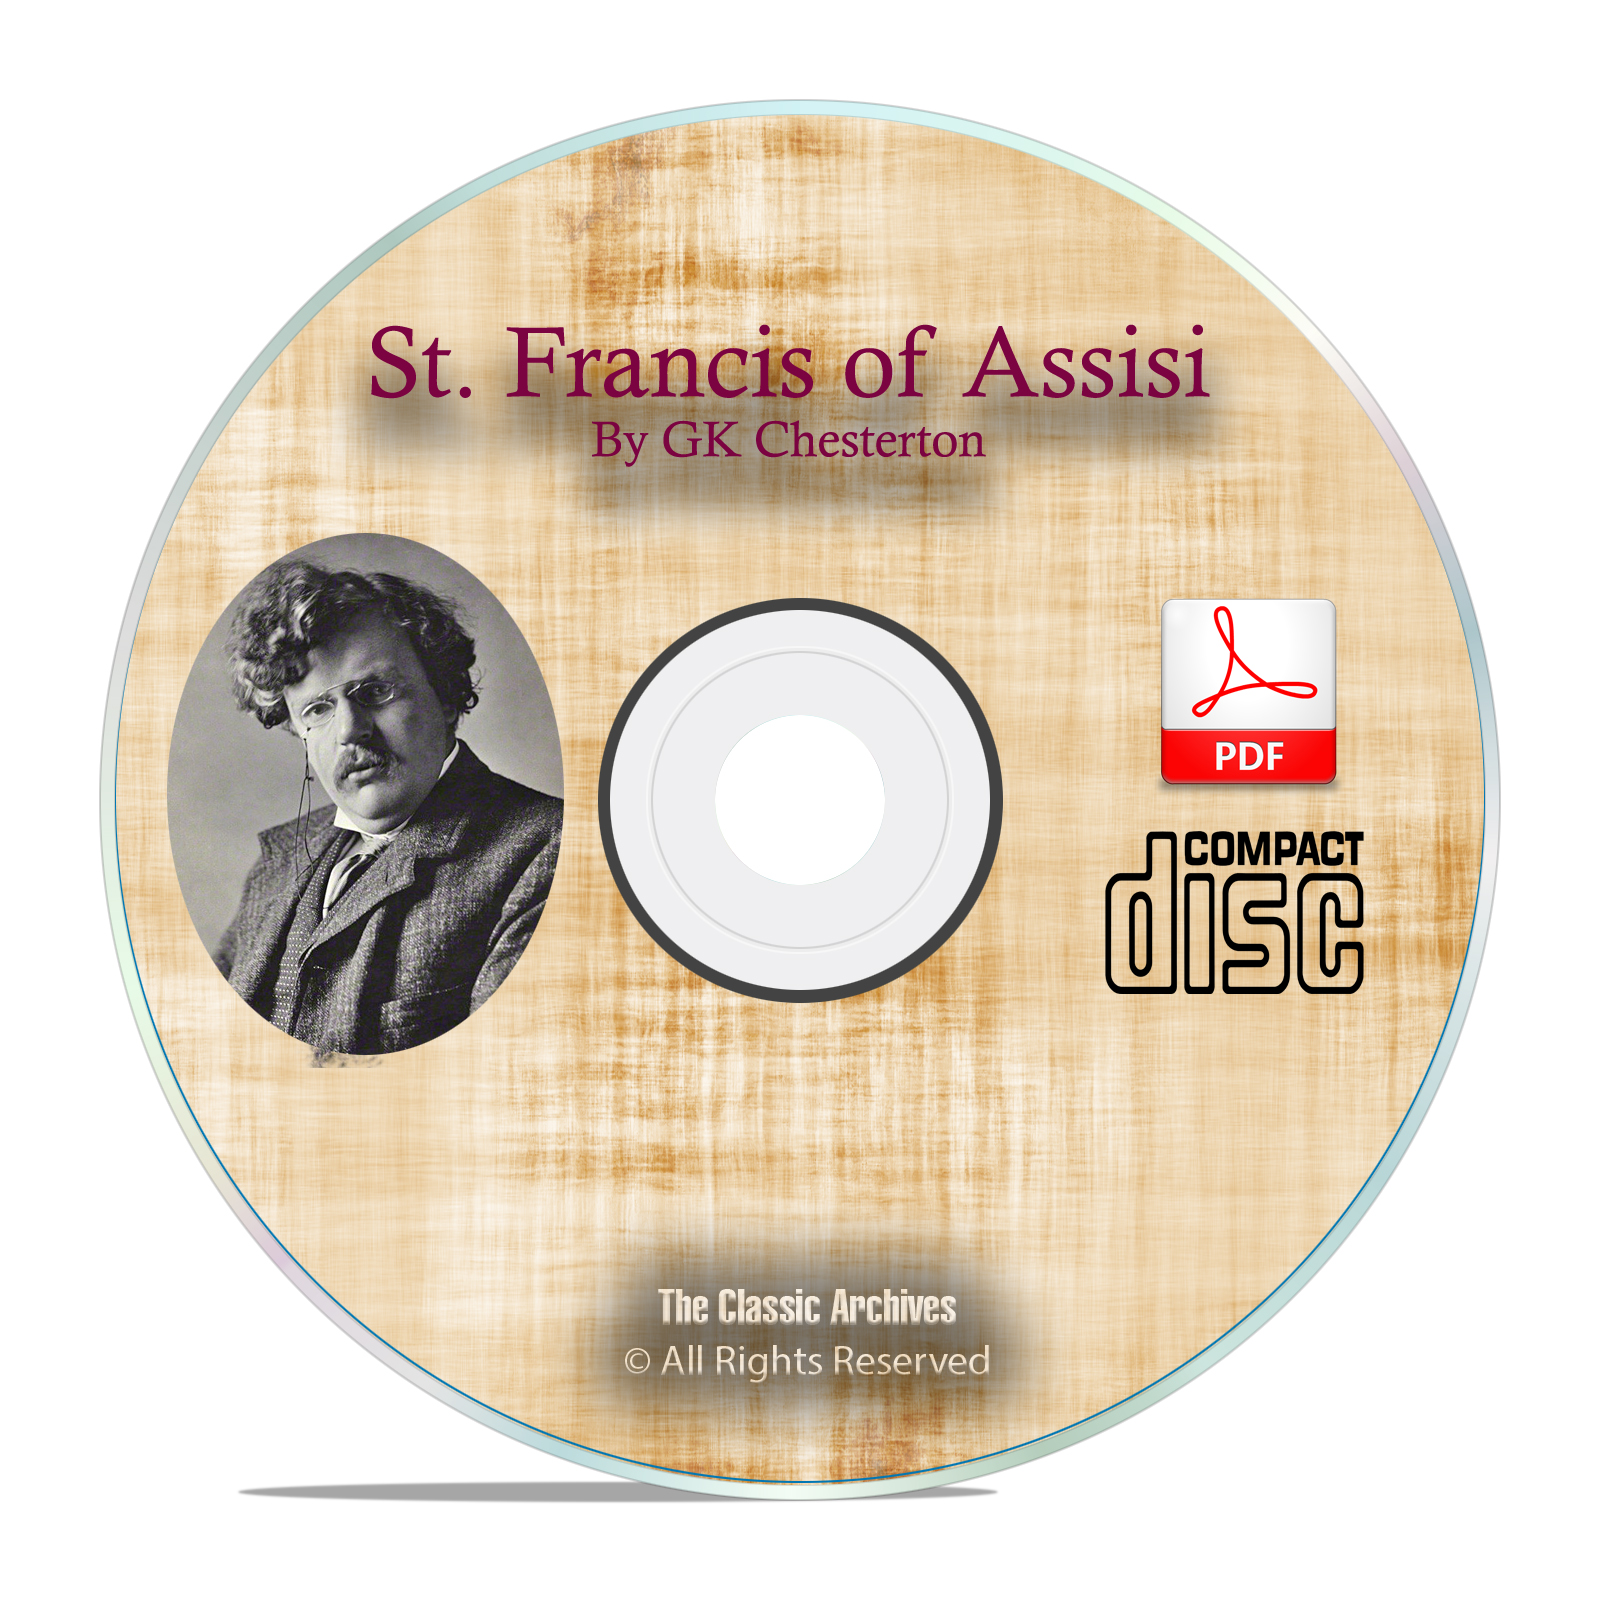 St. Francis of Assisi, GK Chesterton Christian Church History Bible PDF CD